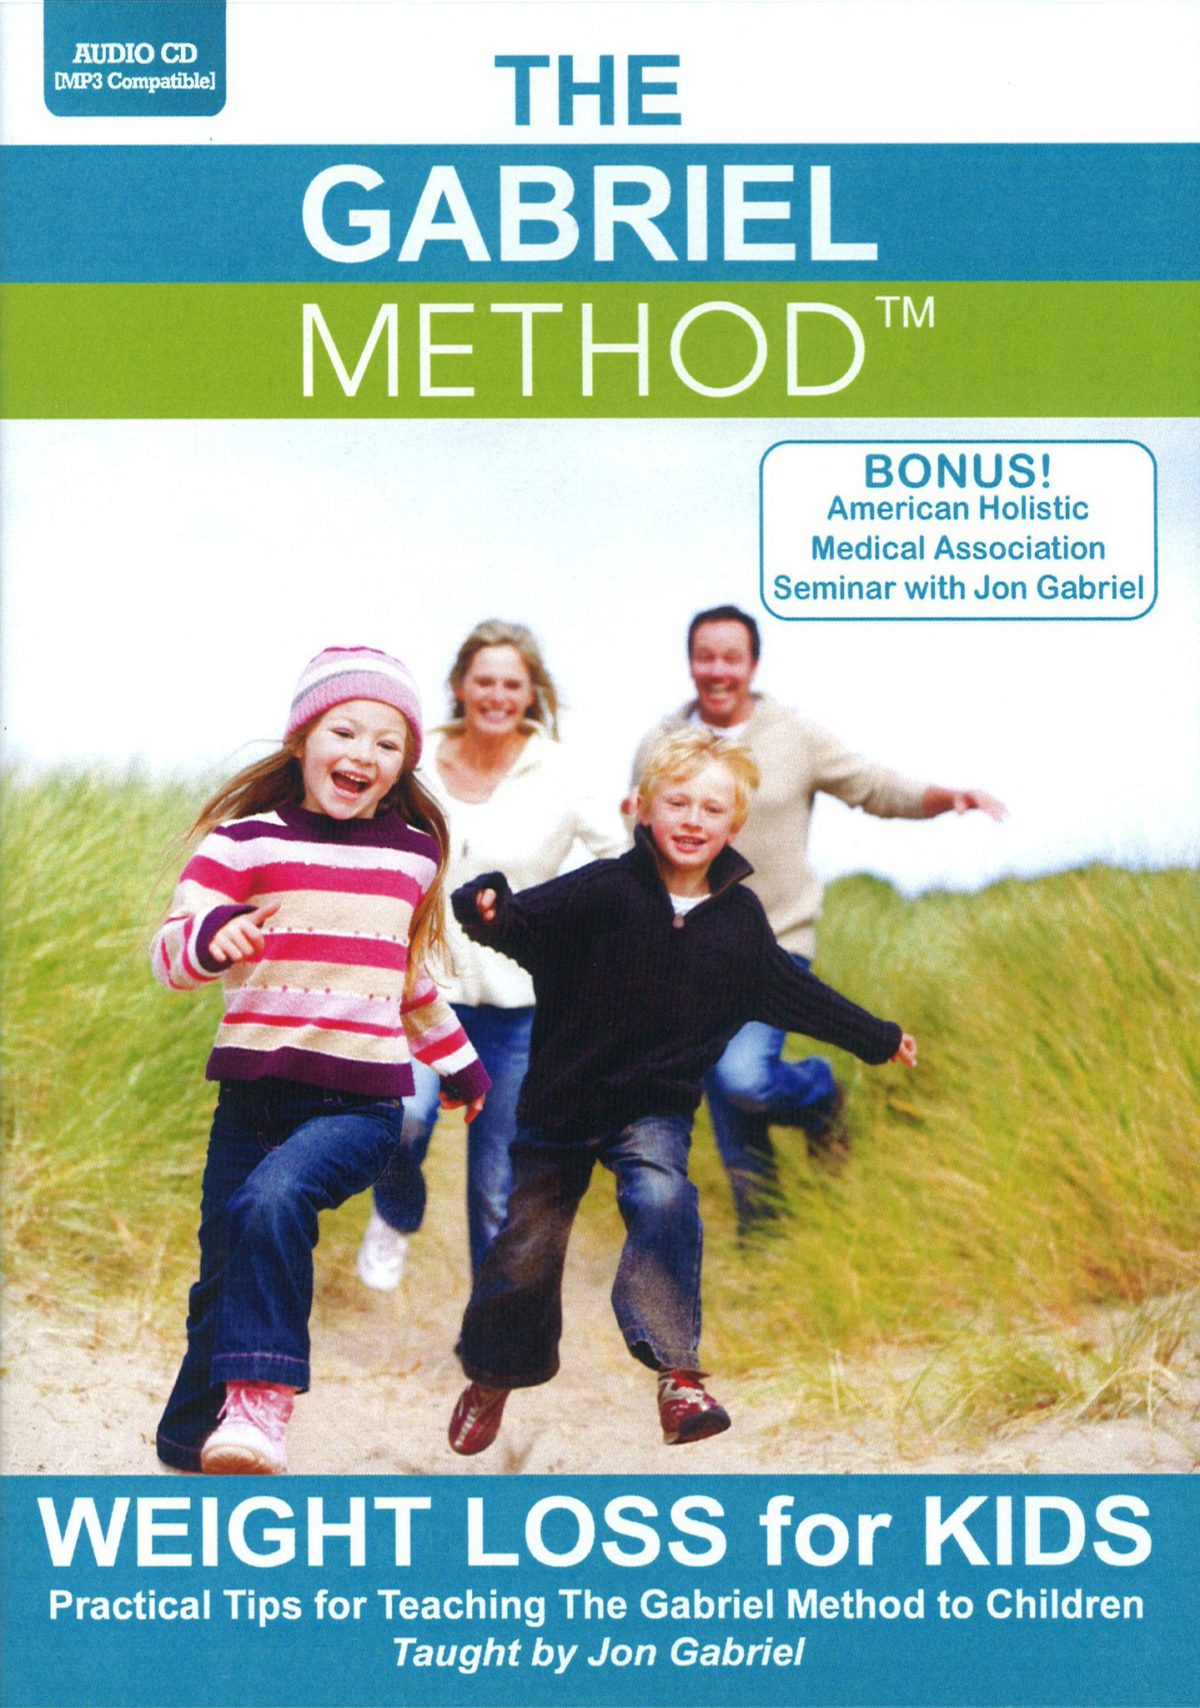 Gabriel Method weight loss for kids